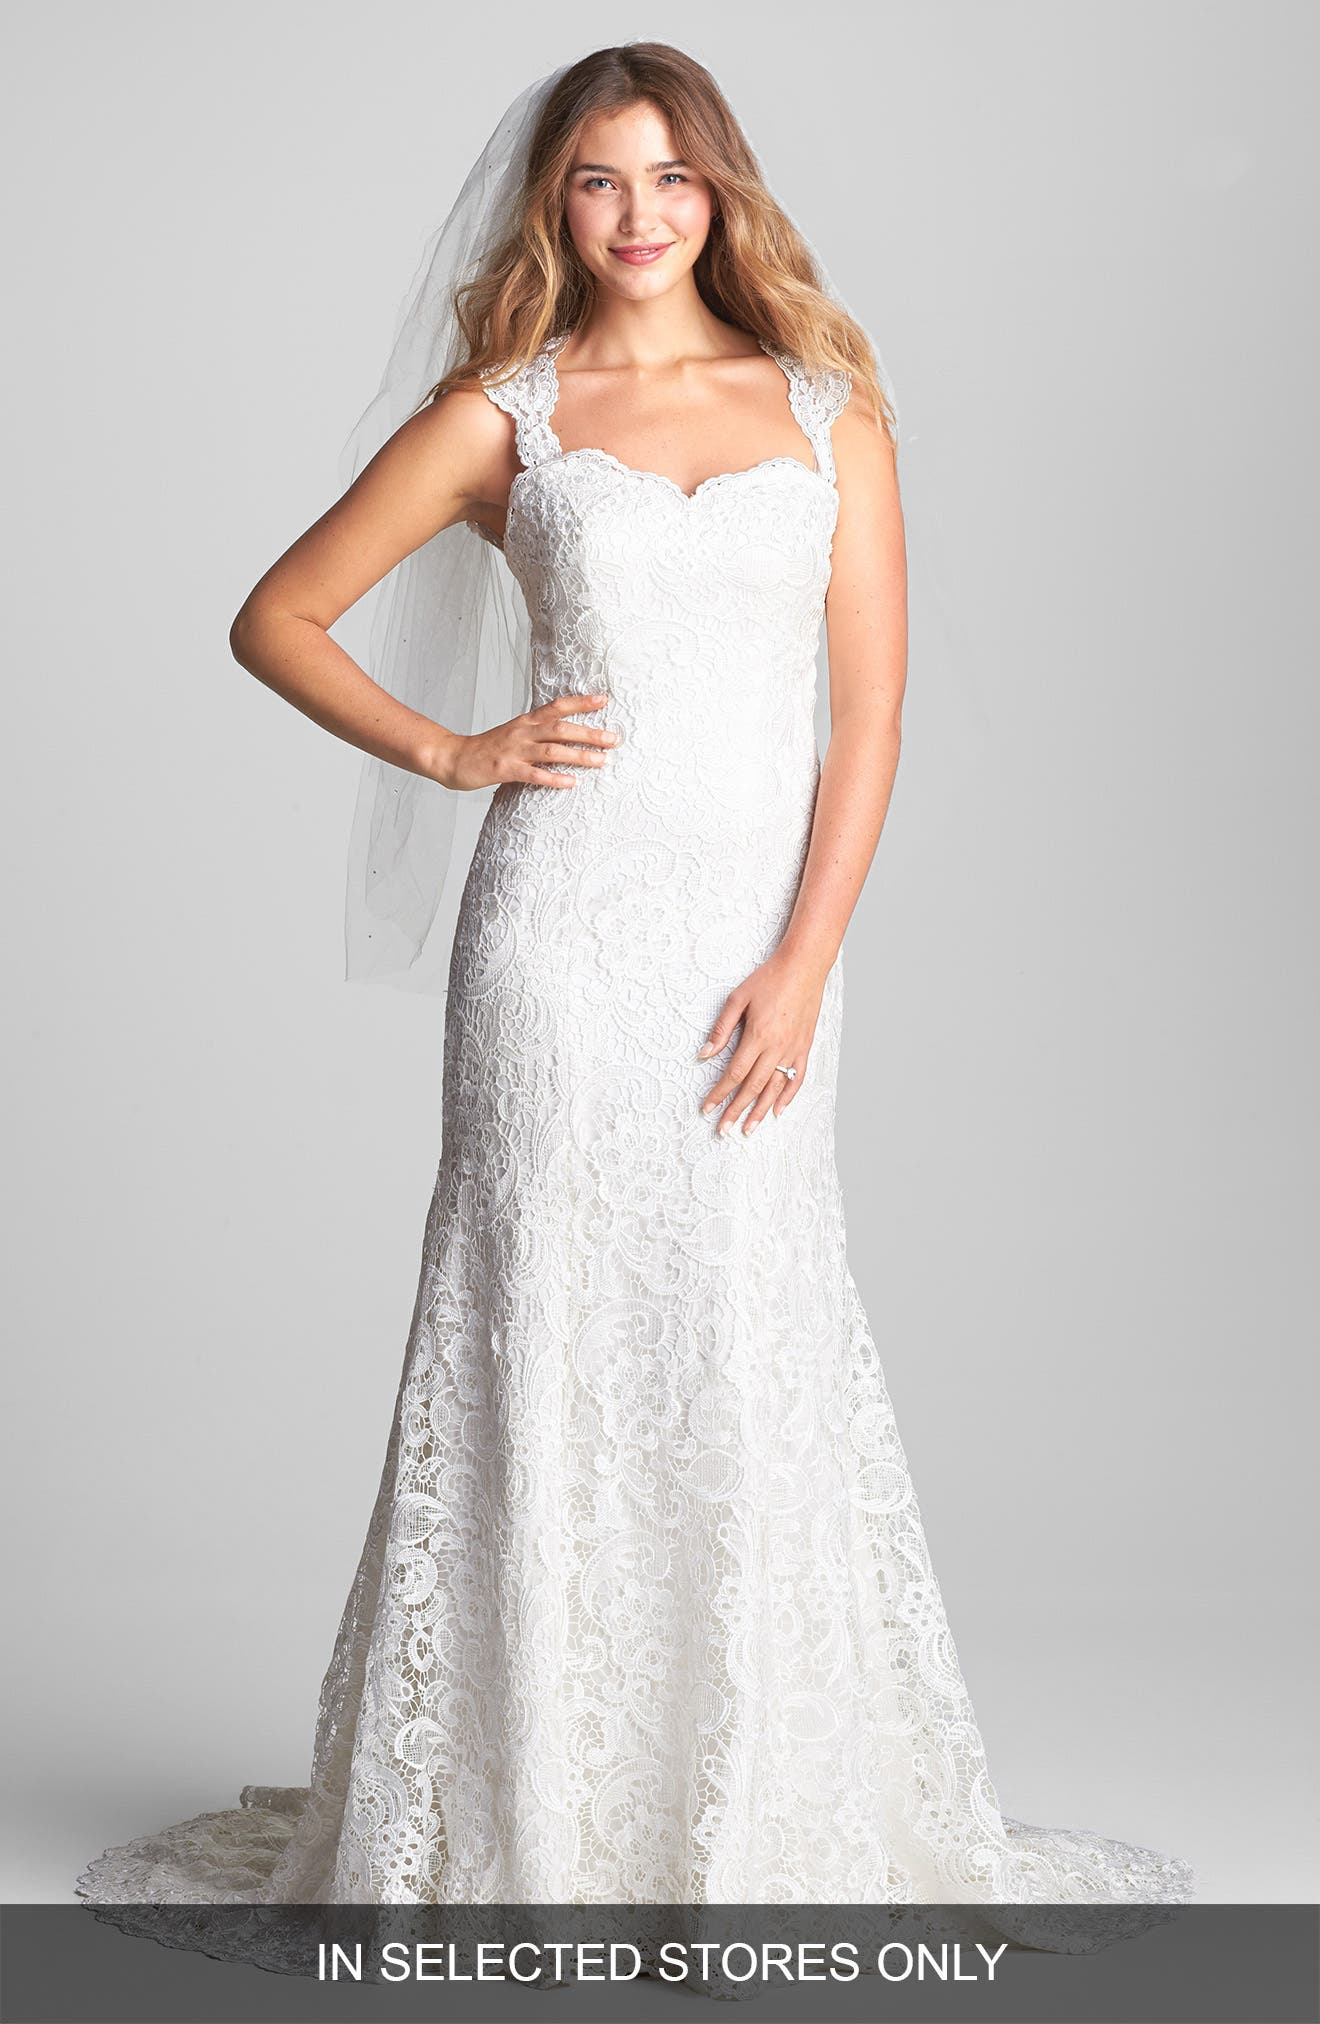 Main Image - Olia Zavozina 'Ann' Lace Fluted Dress (In Stores Only)